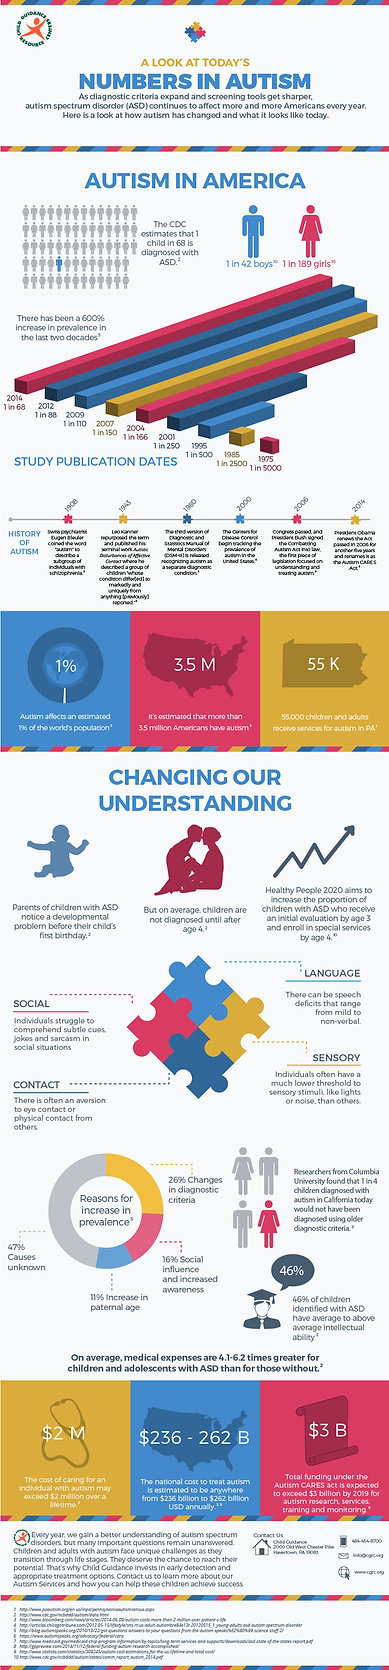 Todays-Numbers-in-Autism-Infographic.jpg